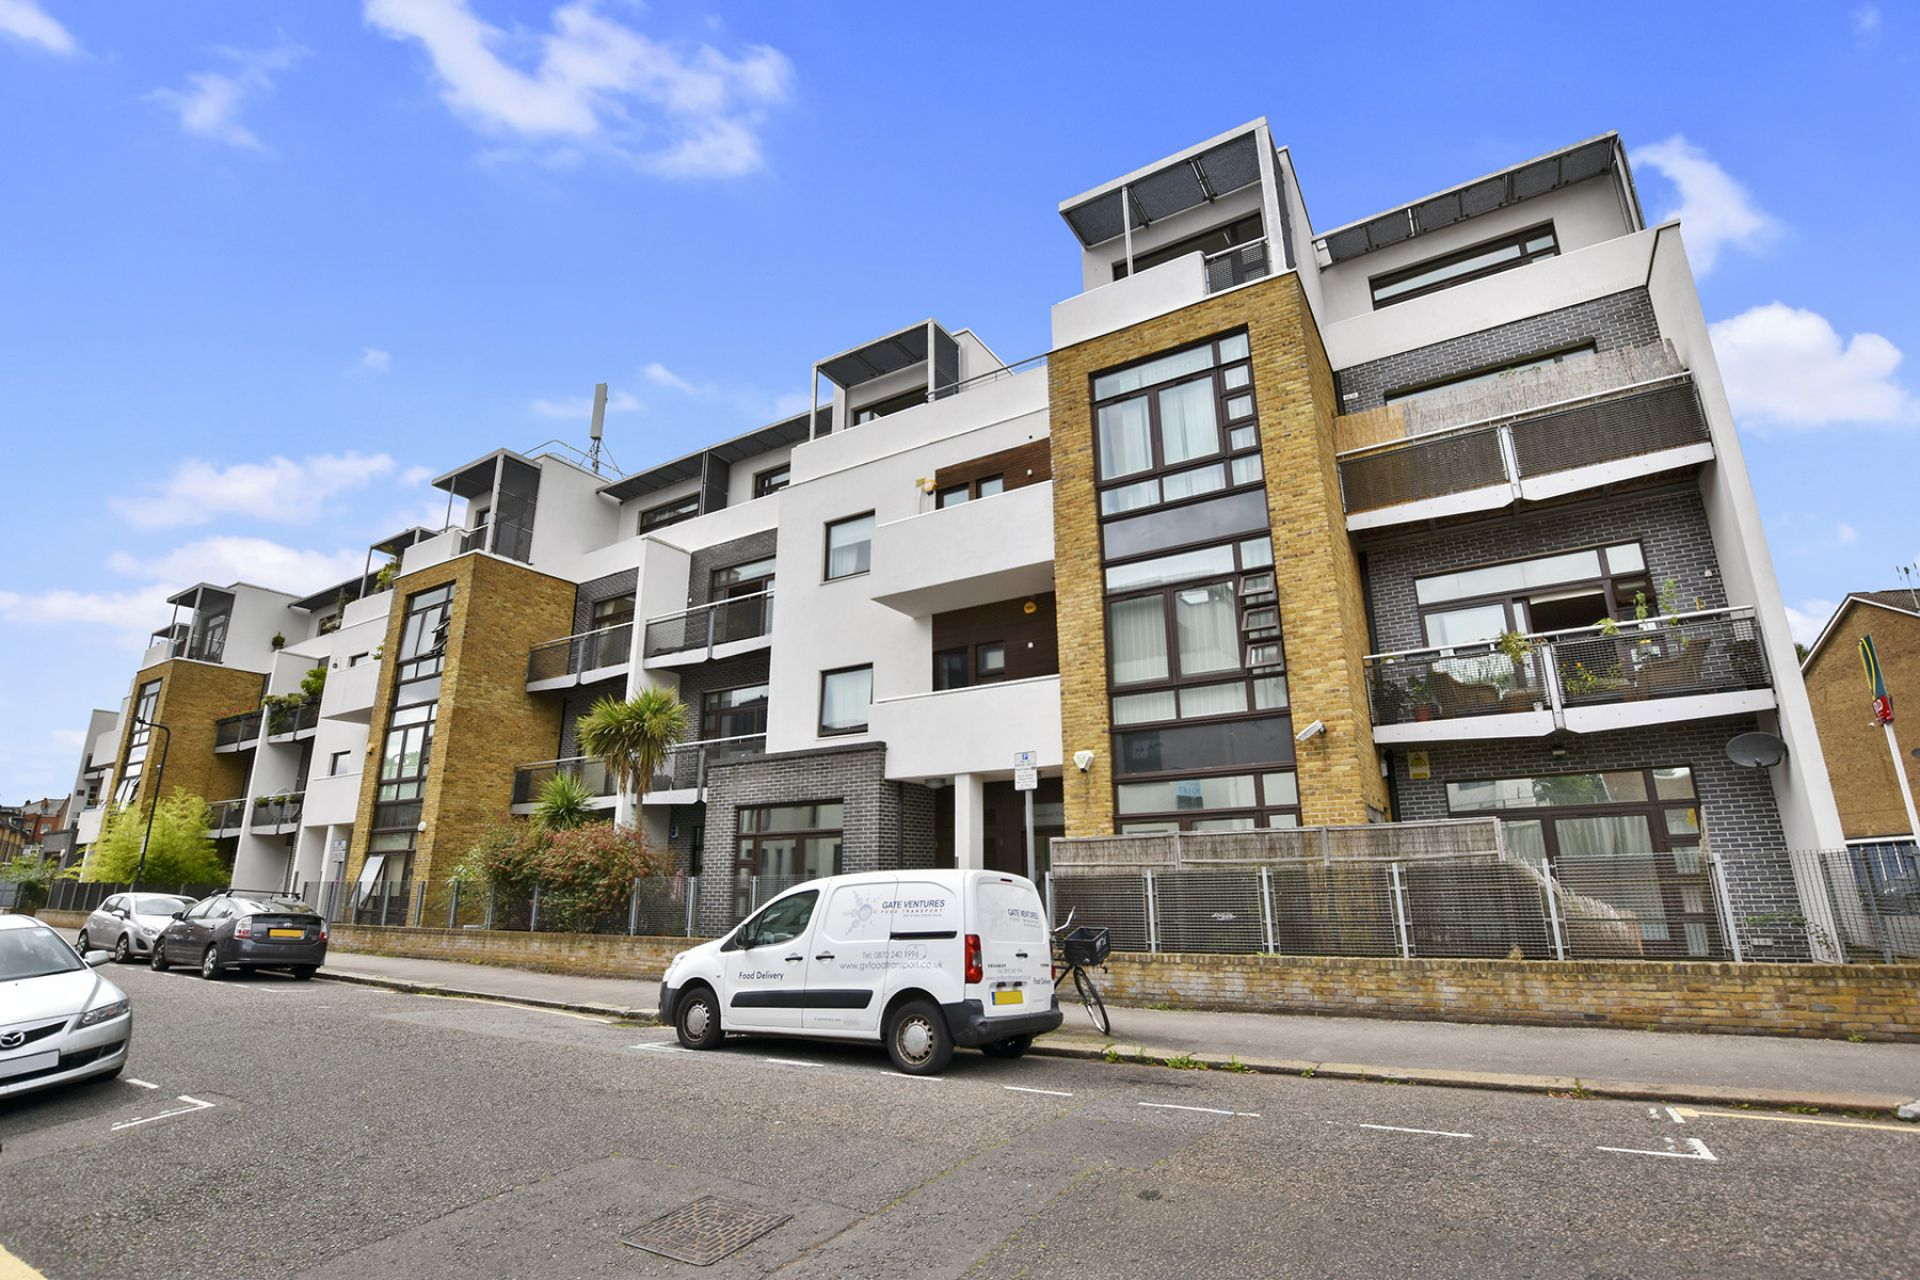 4 bedroom  Flat to rent in London NW6